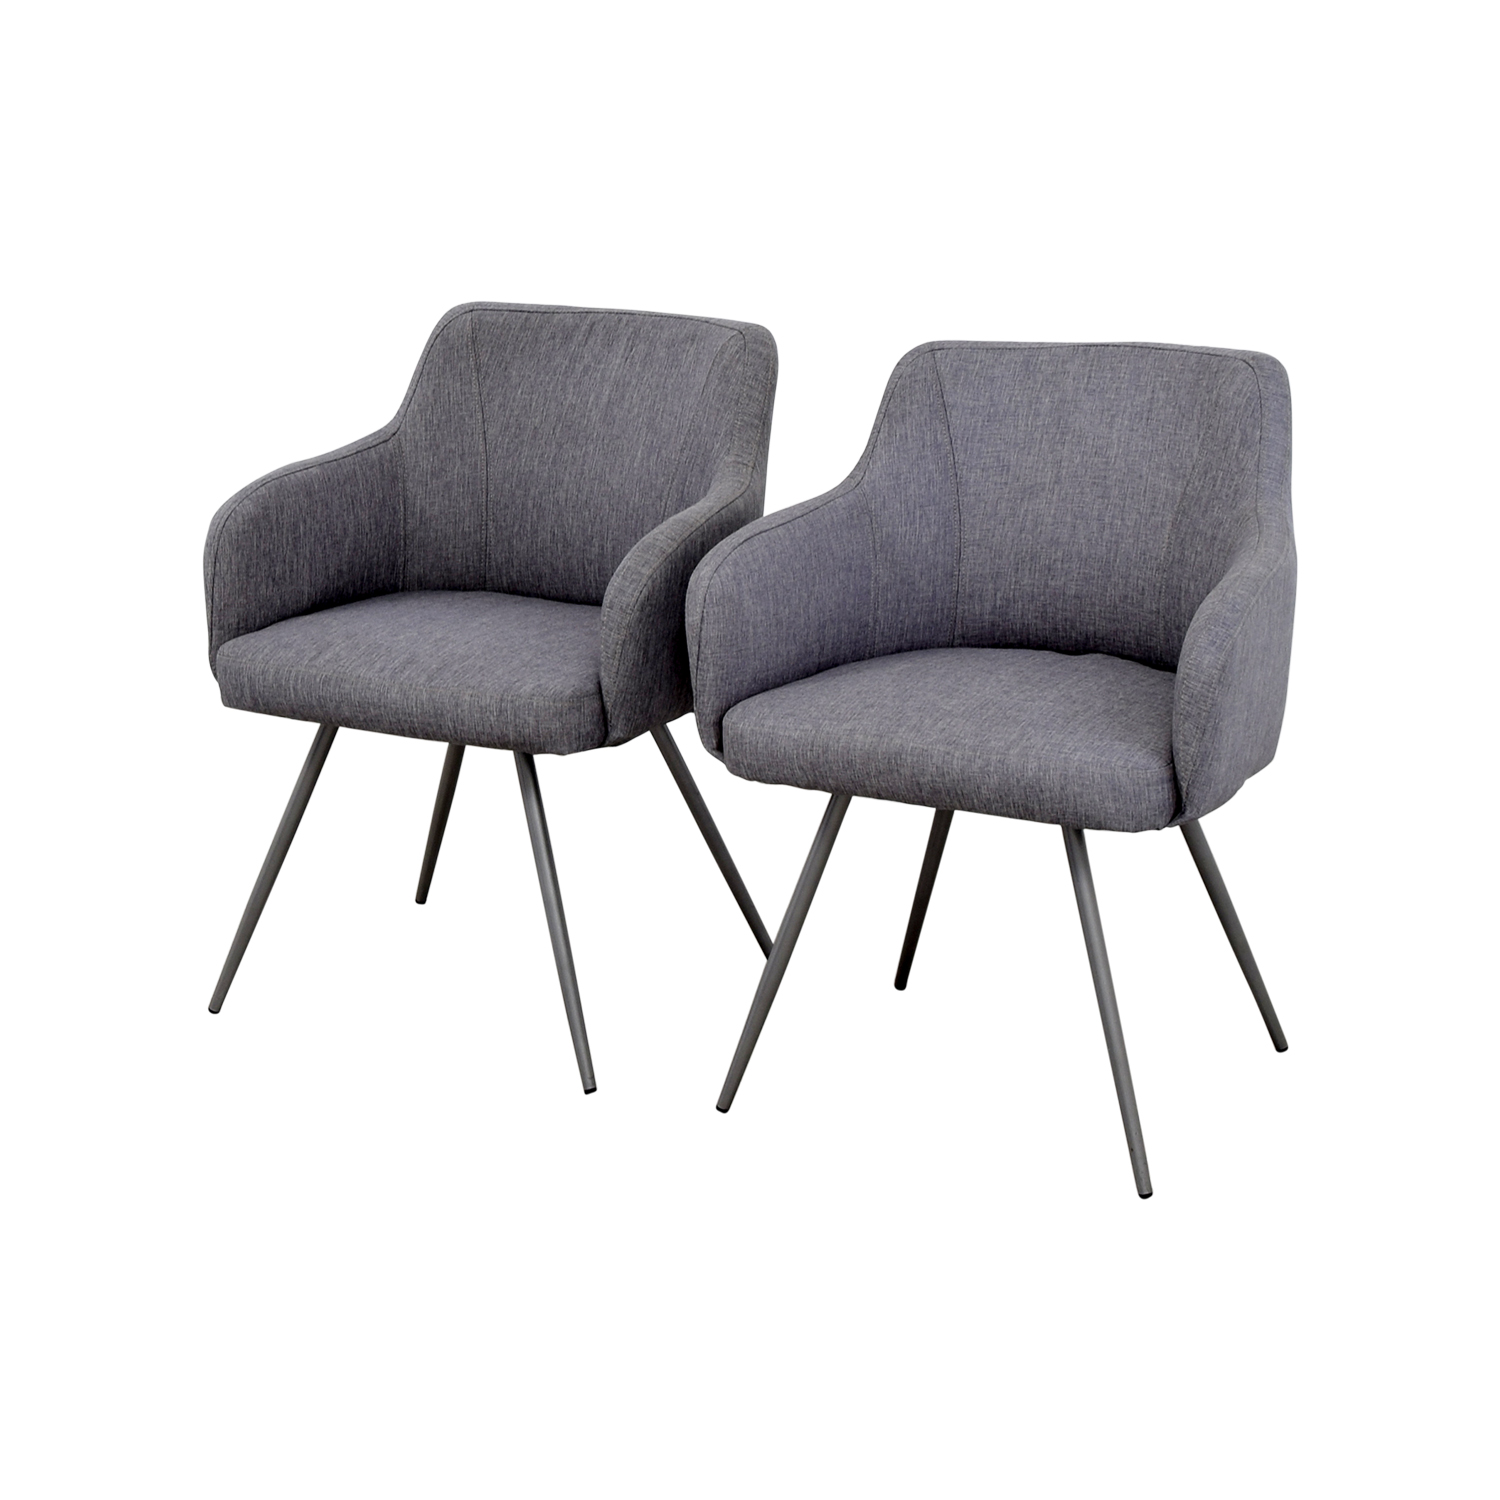 Phenomenal 63 Off Allmodern Allmodern Mid Century Grey Upholstered Dining Chairs Chairs Pabps2019 Chair Design Images Pabps2019Com